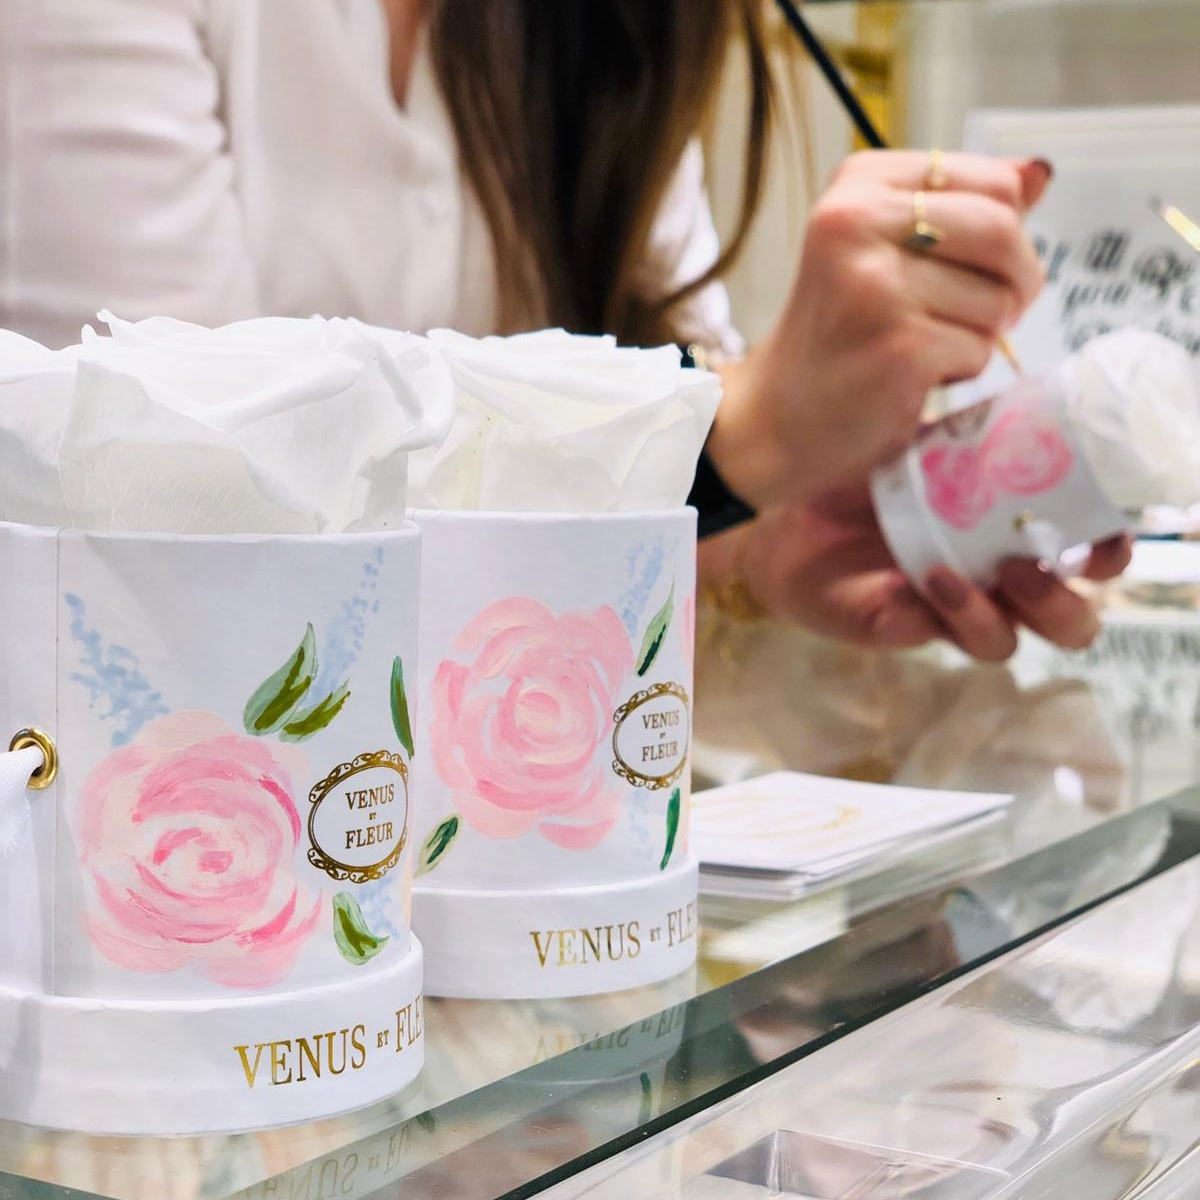 VENUS ET FLEUR - 16th May 2019 | London, MayfairLive illustration on the mini floral hat boxes, in the London floral boutique to celebrate the launch of the new bridal collection.